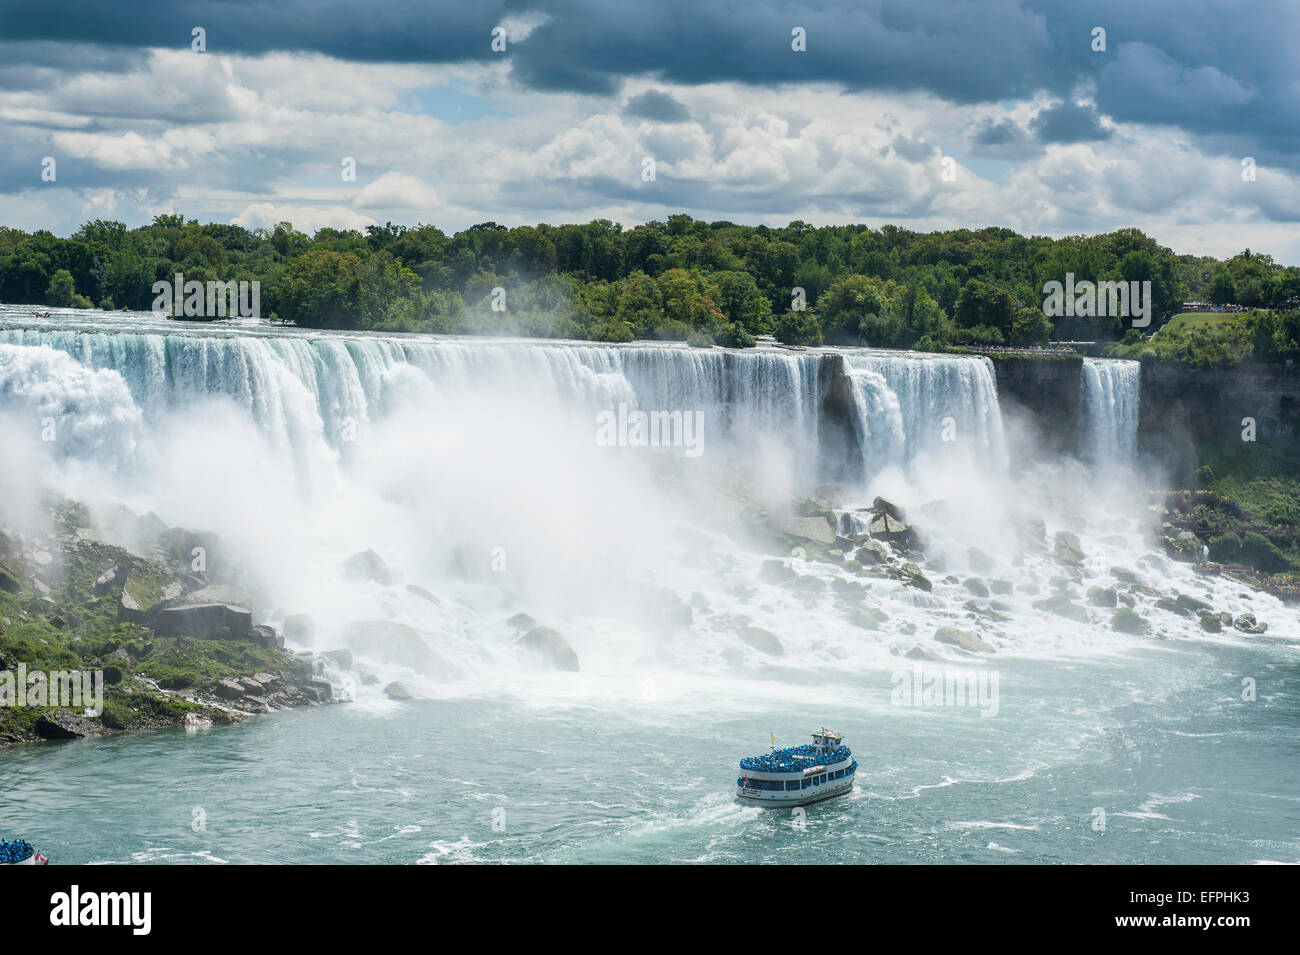 View over the American Falls part of the Niagara Falls, Ontario, Canada, North America - Stock Image